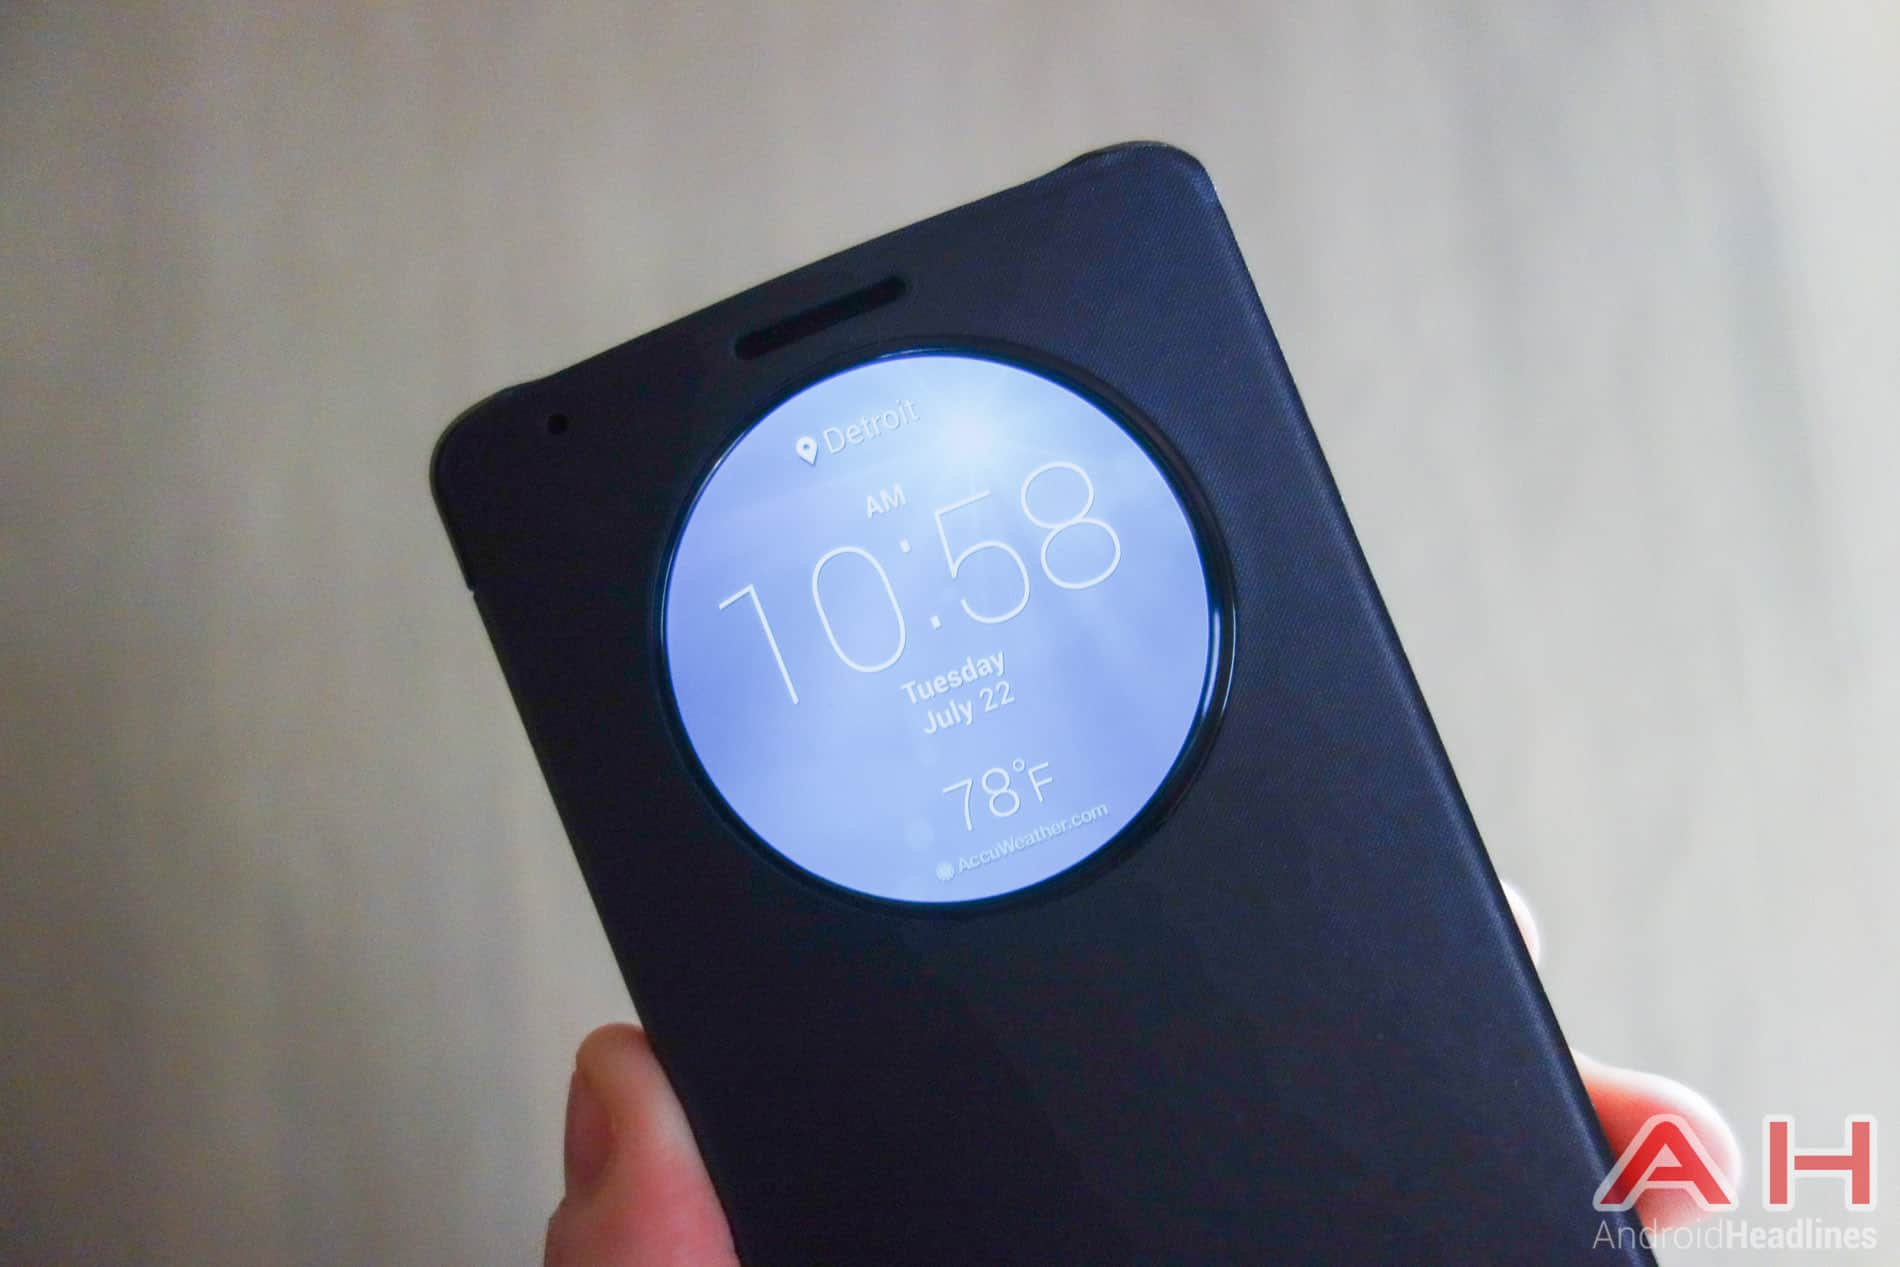 Android How To: Change the Clock Face on LG's Quick Circle Case